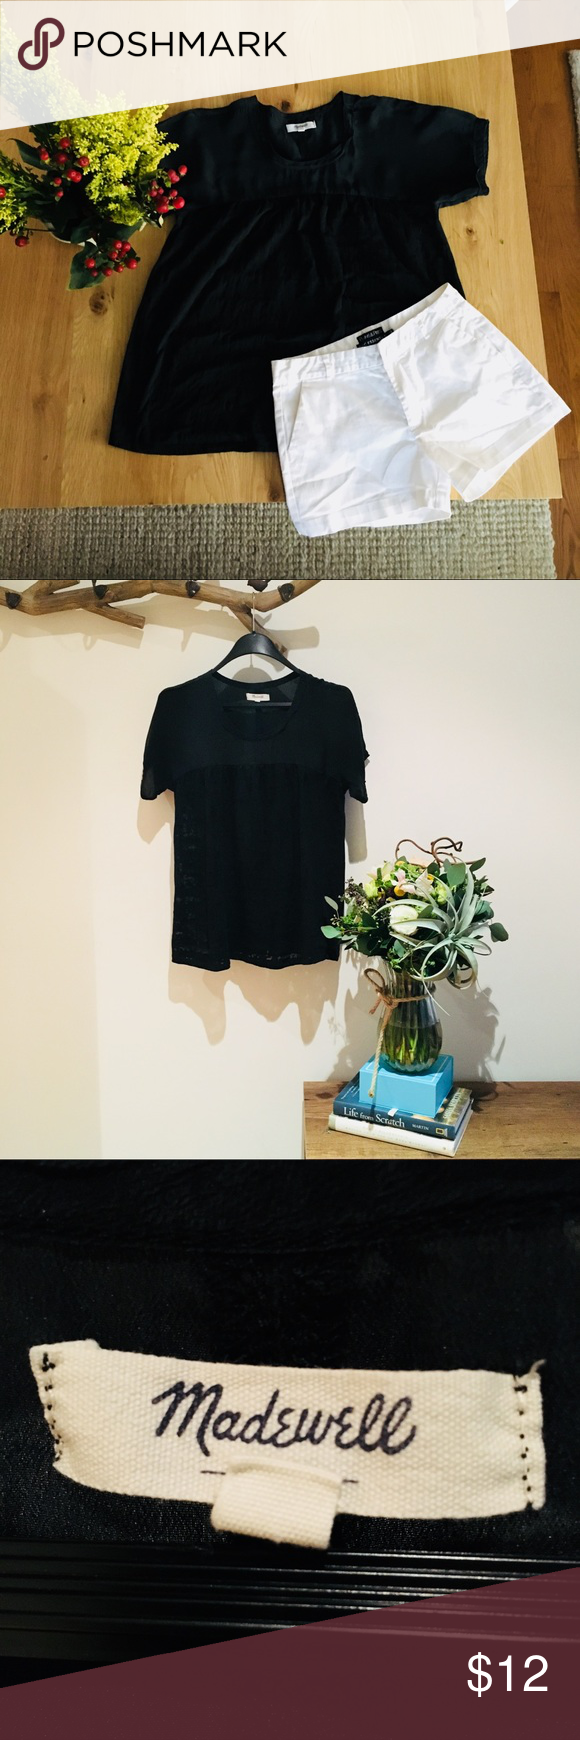 🔥Sale🔥Black Top from Madewell Comfortable and cute too from Madewell. Madewell Tops Tees - Short Sleeve